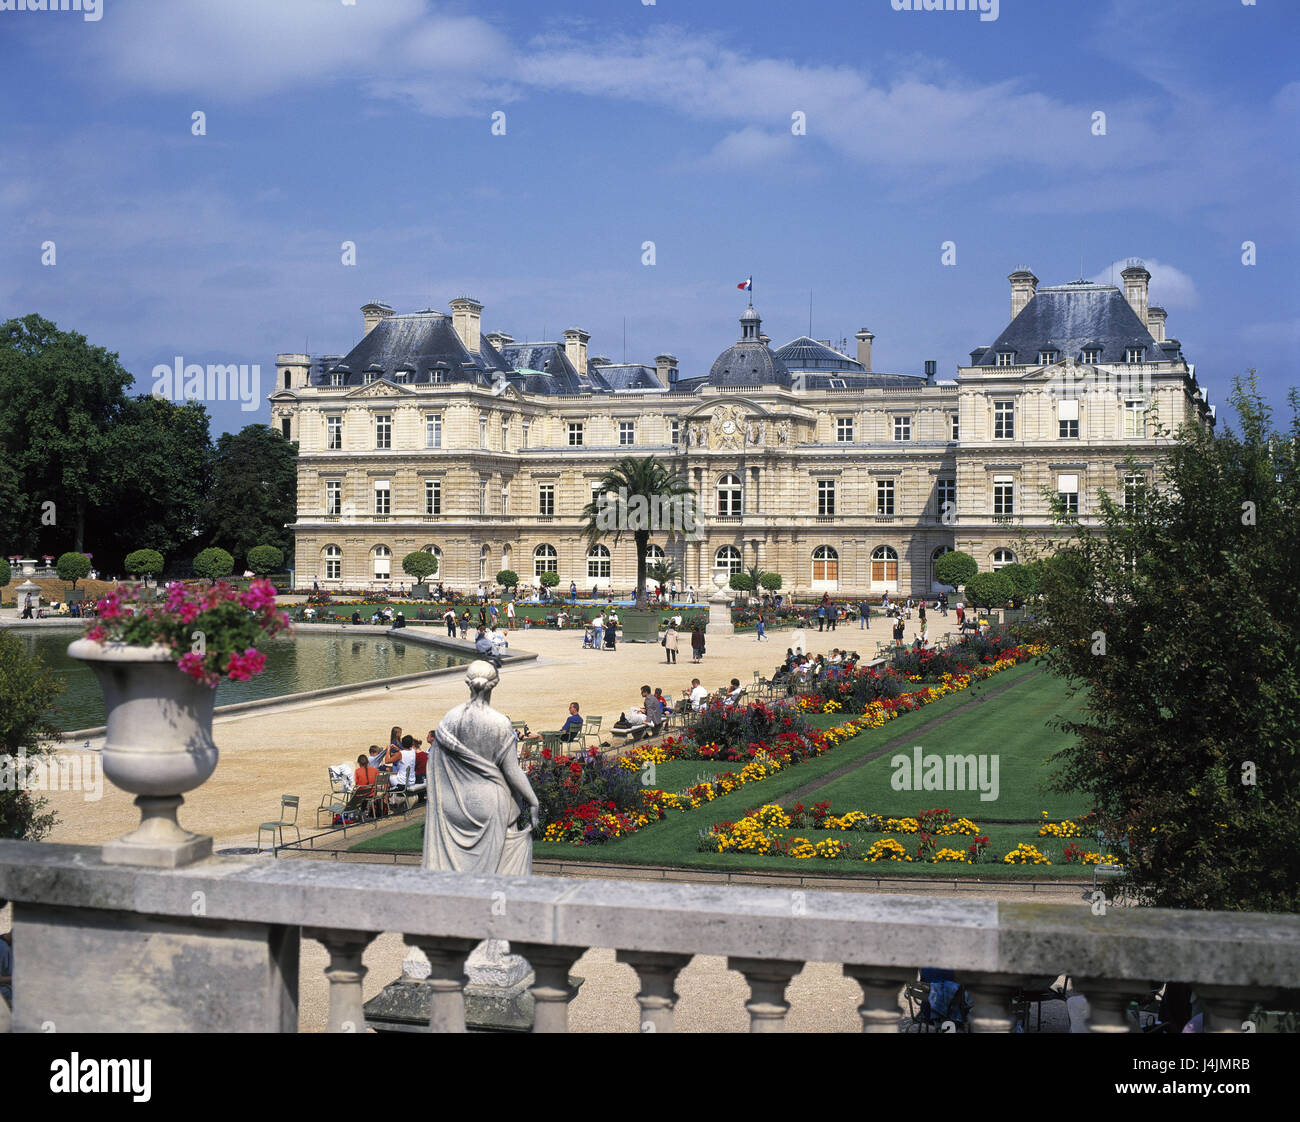 luxembourg park stockfotos luxembourg park bilder alamy. Black Bedroom Furniture Sets. Home Design Ideas